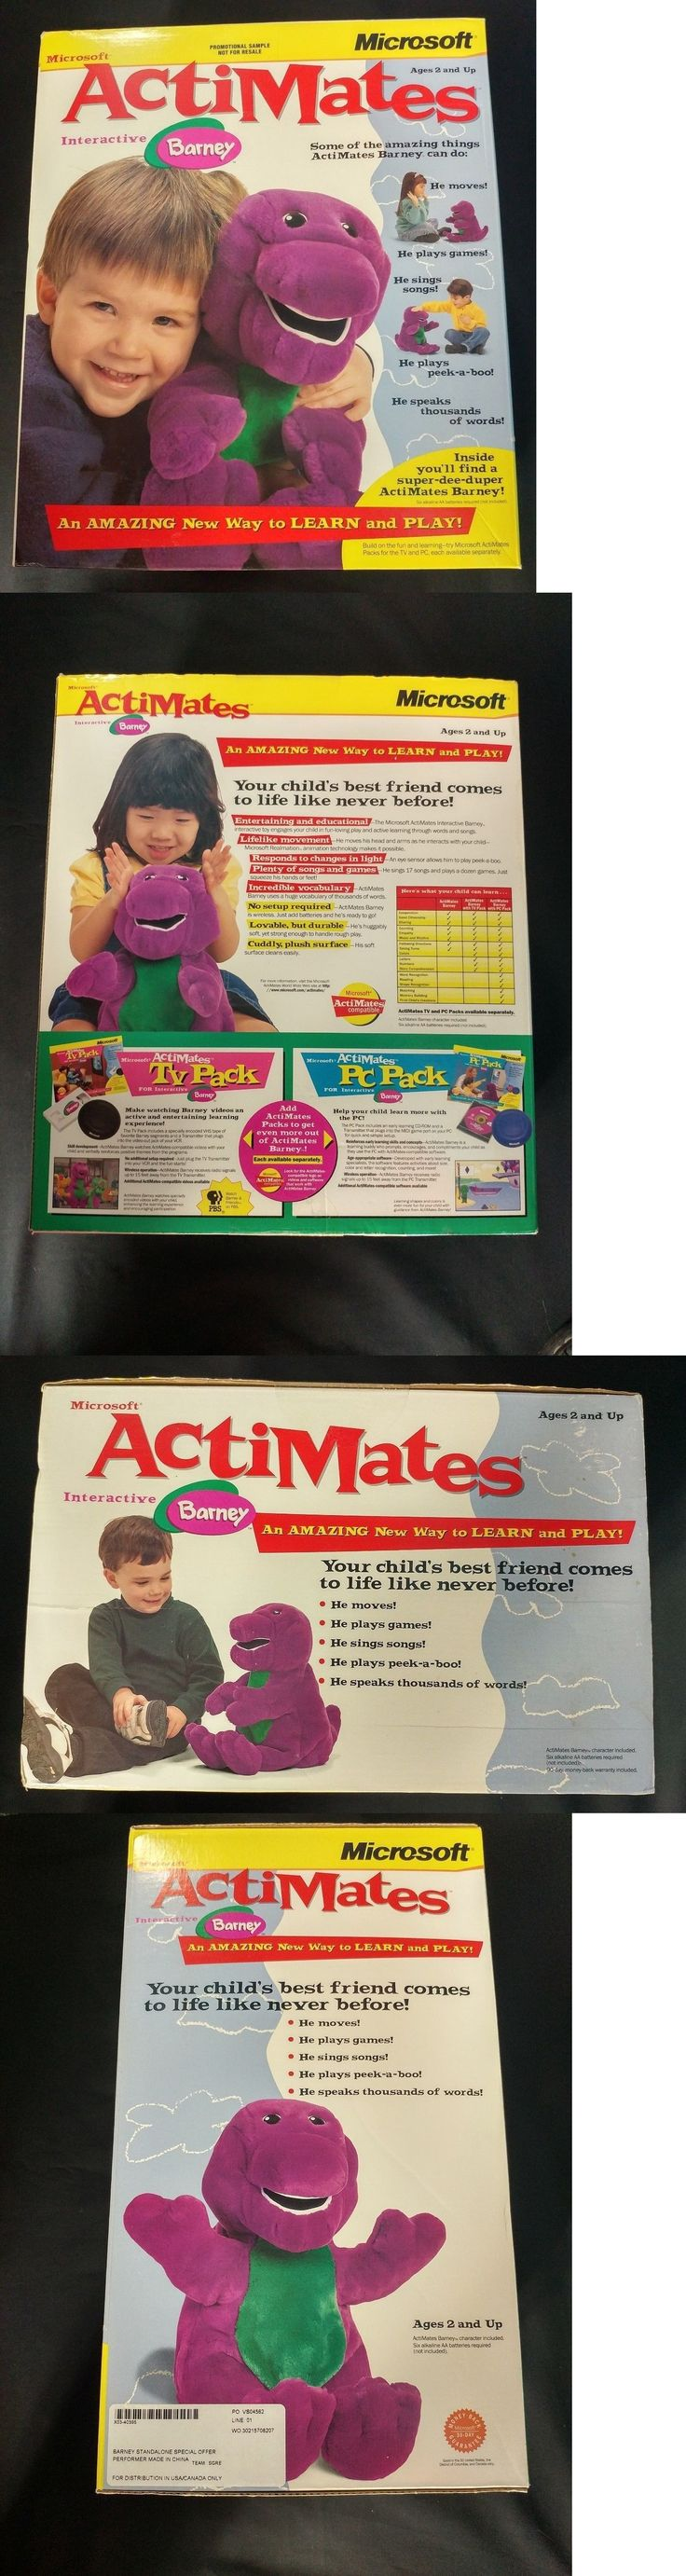 Barney 2625: Microsoft Actimates 1997 Interactive Barney The Dinosaur Learn Play Plush Sealed -> BUY IT NOW ONLY: $150 on eBay!